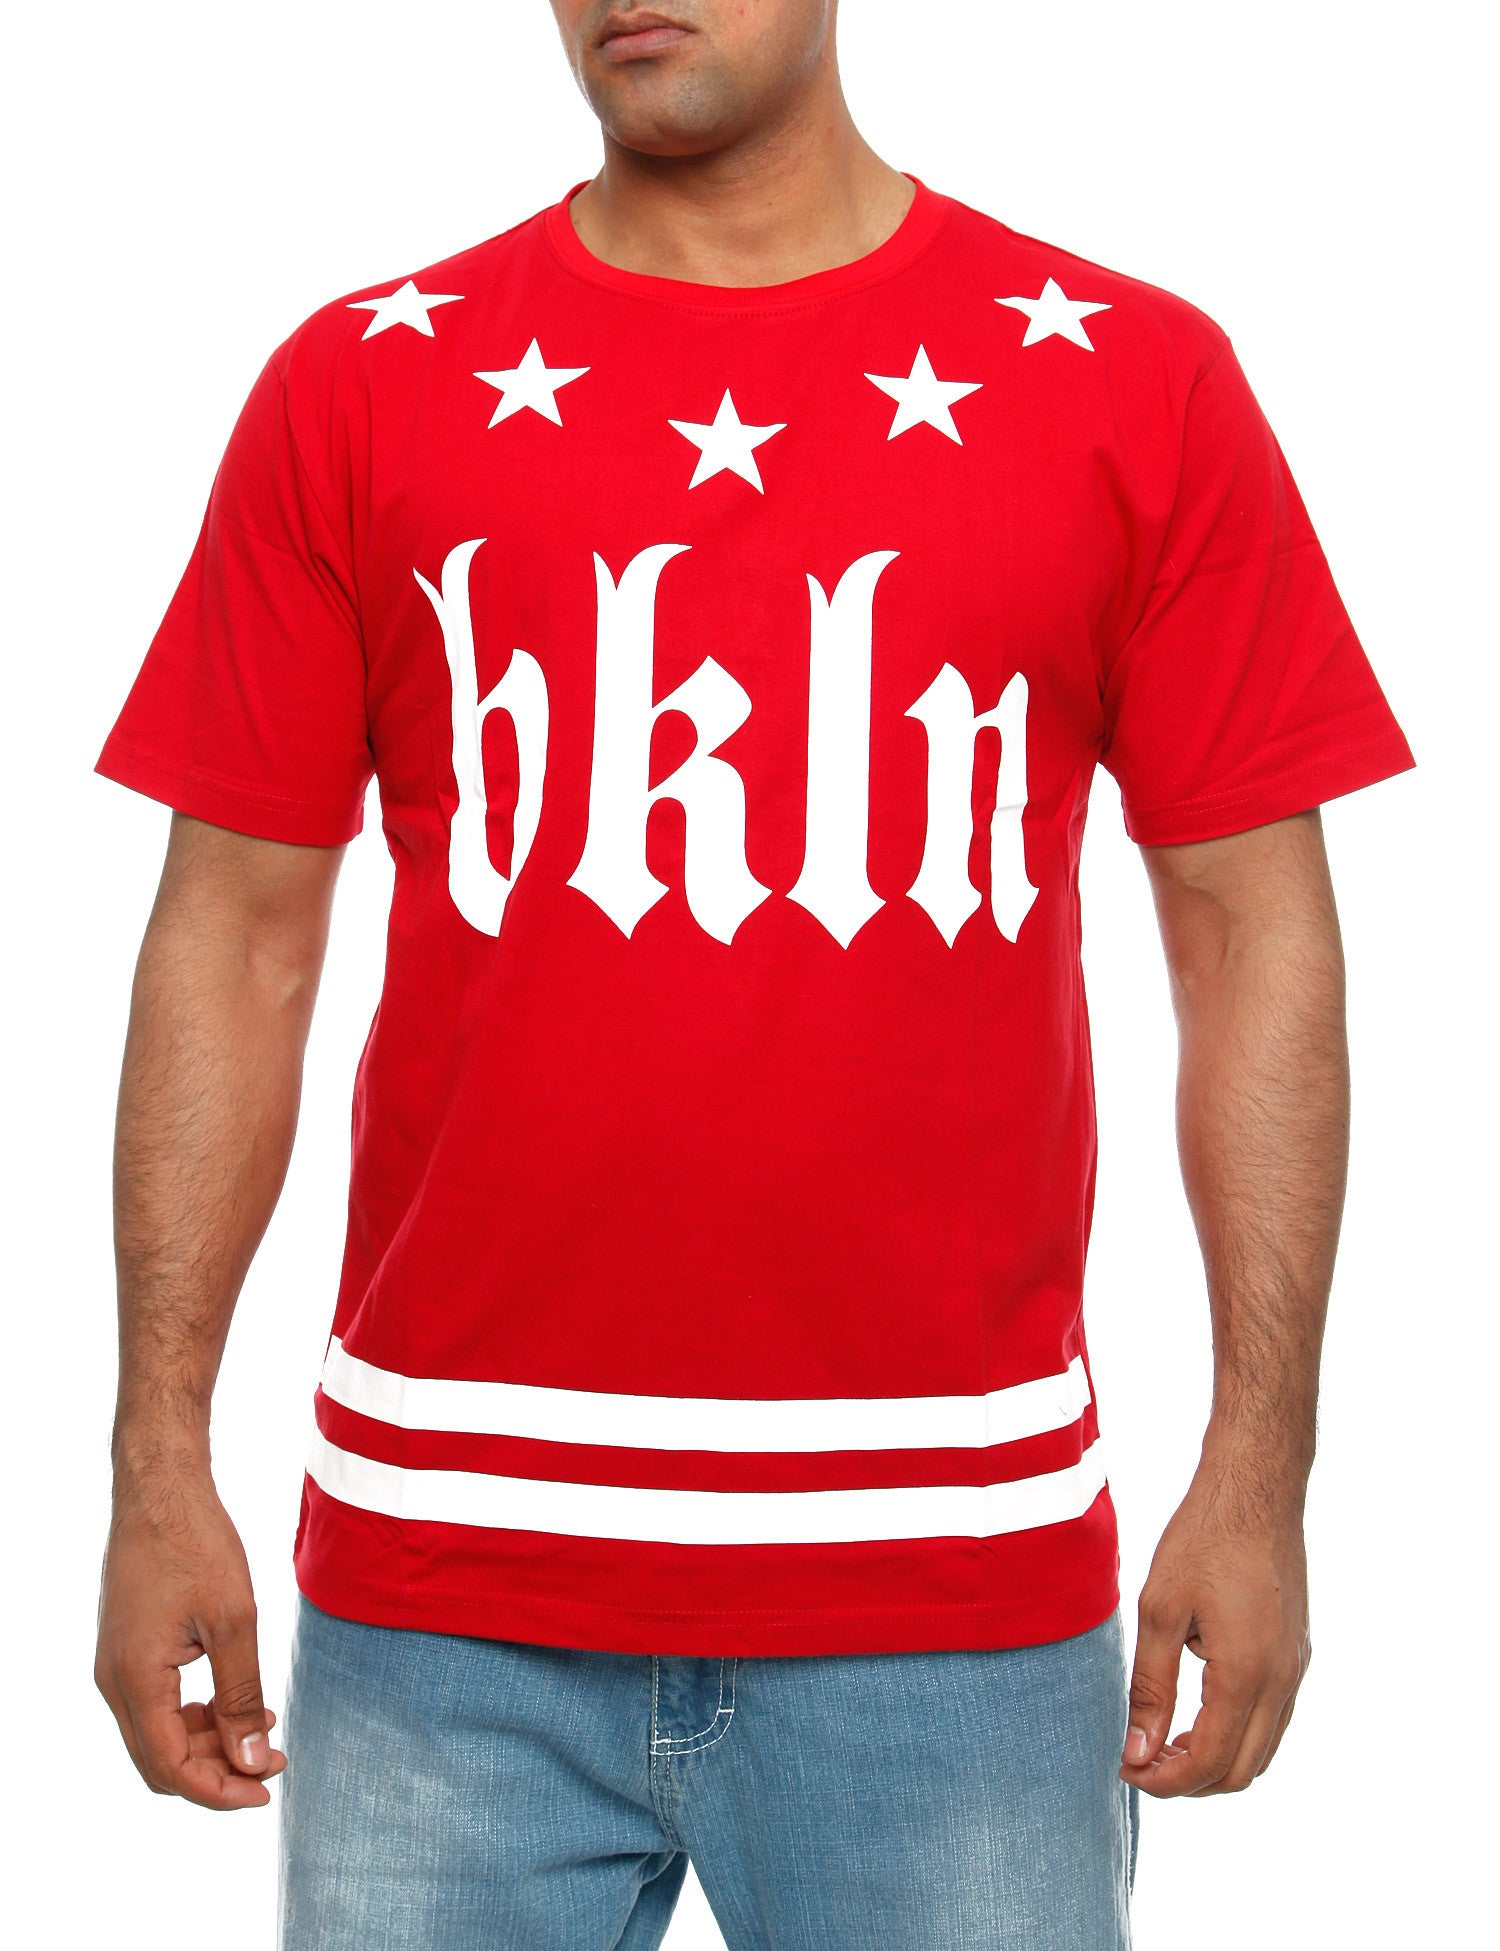 YLD T-336C T-Shirt Red